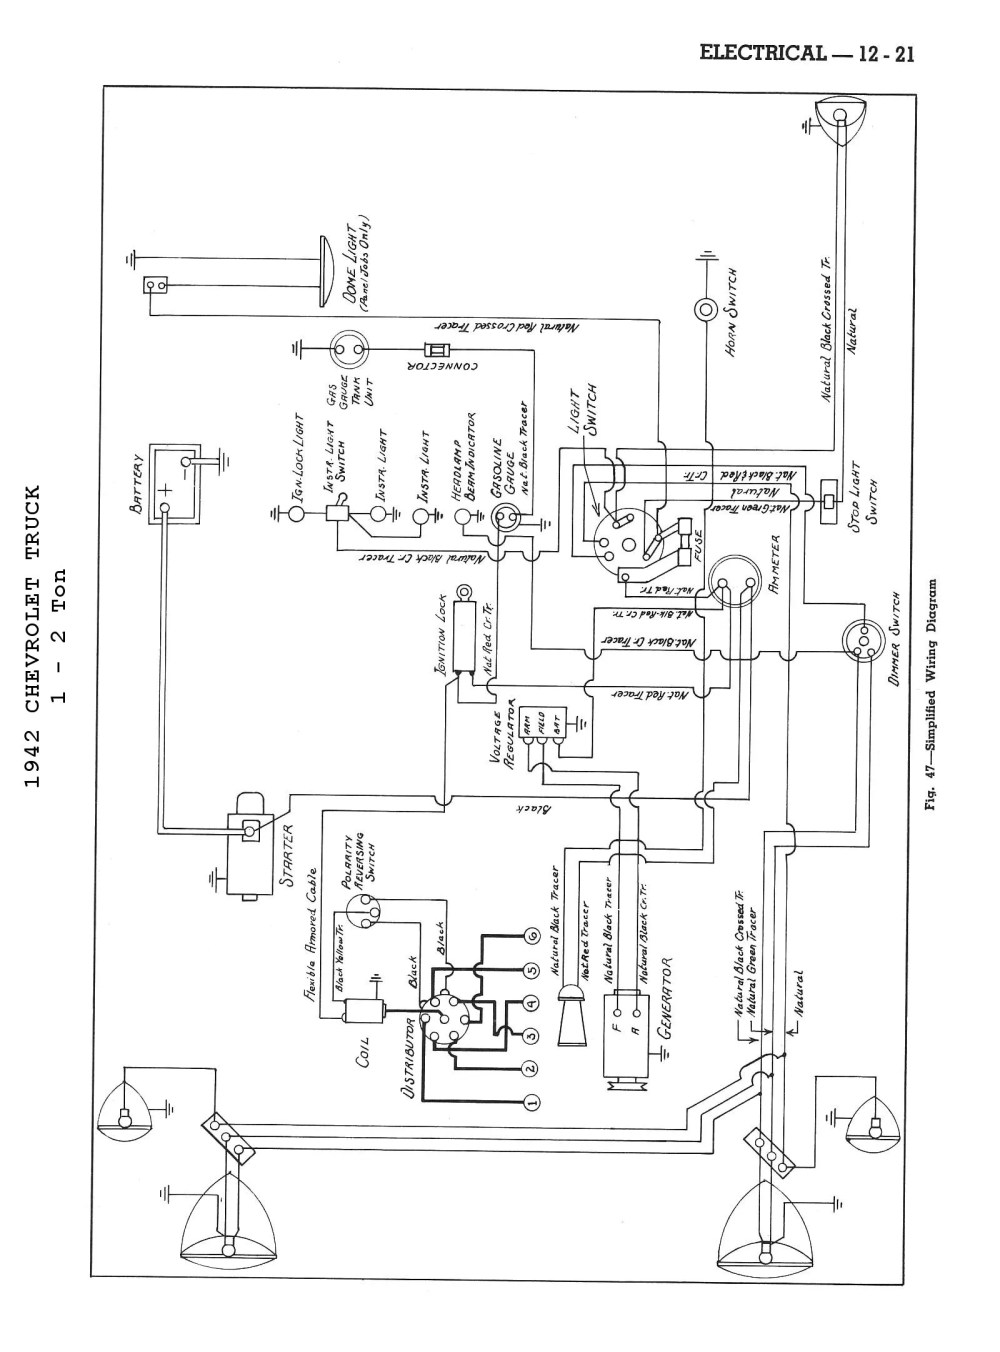 medium resolution of wiring diagram for a 1937 chevy truck wiring diagram mega 38 chevy truck wire diagram